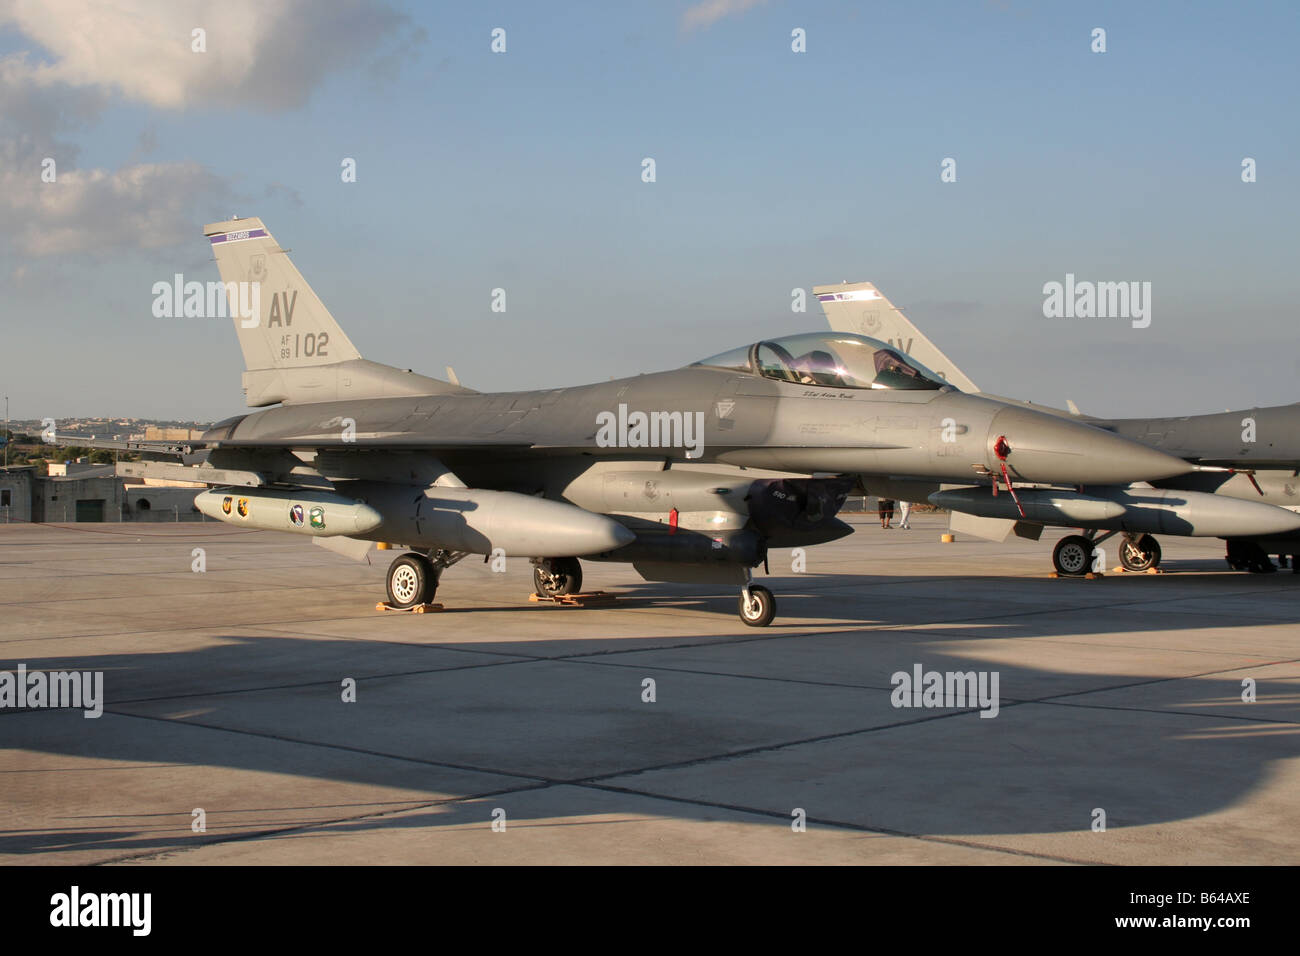 F-16C jet fighter of the US Air Force - Stock Image